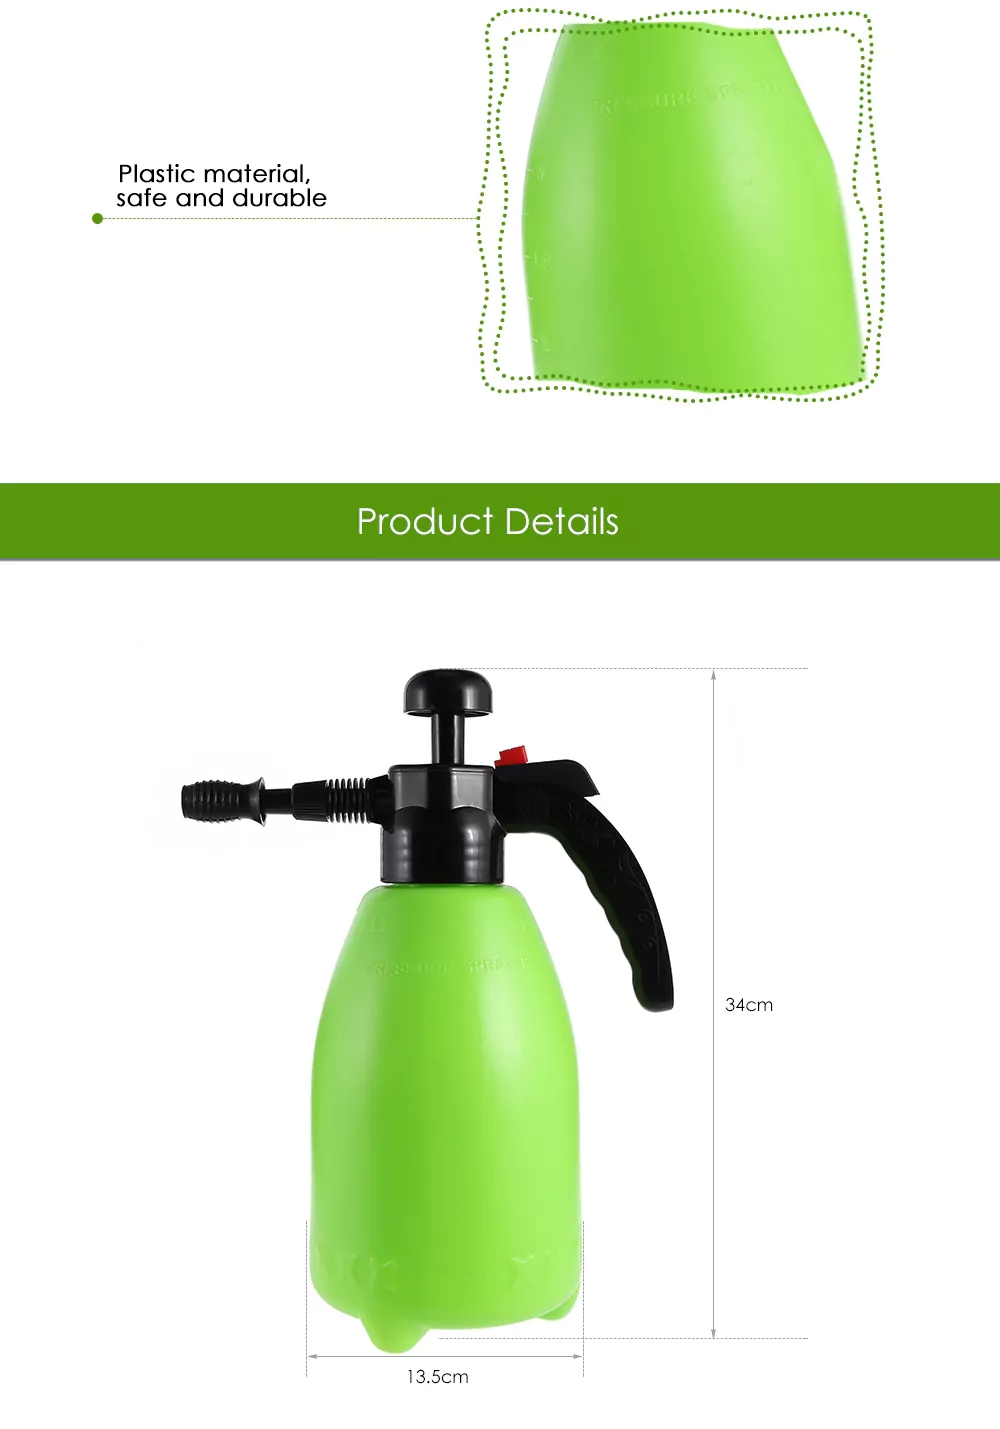 Gardening Atomizer Tool Sprinkle Watering Can, Green